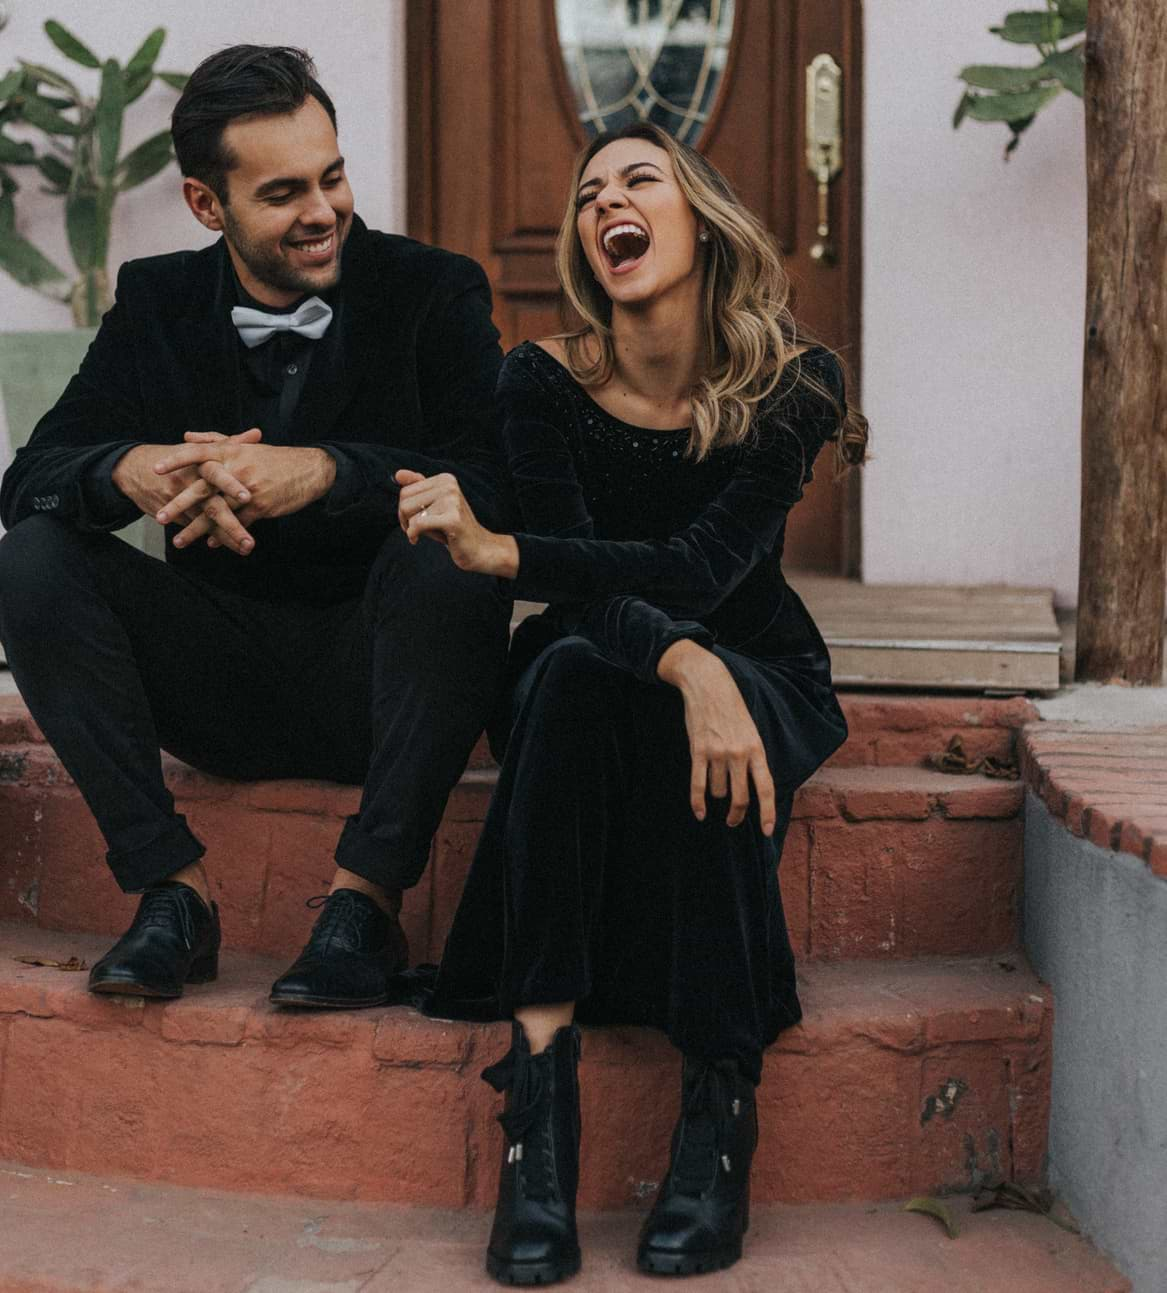 couple wearing black at a wedding party